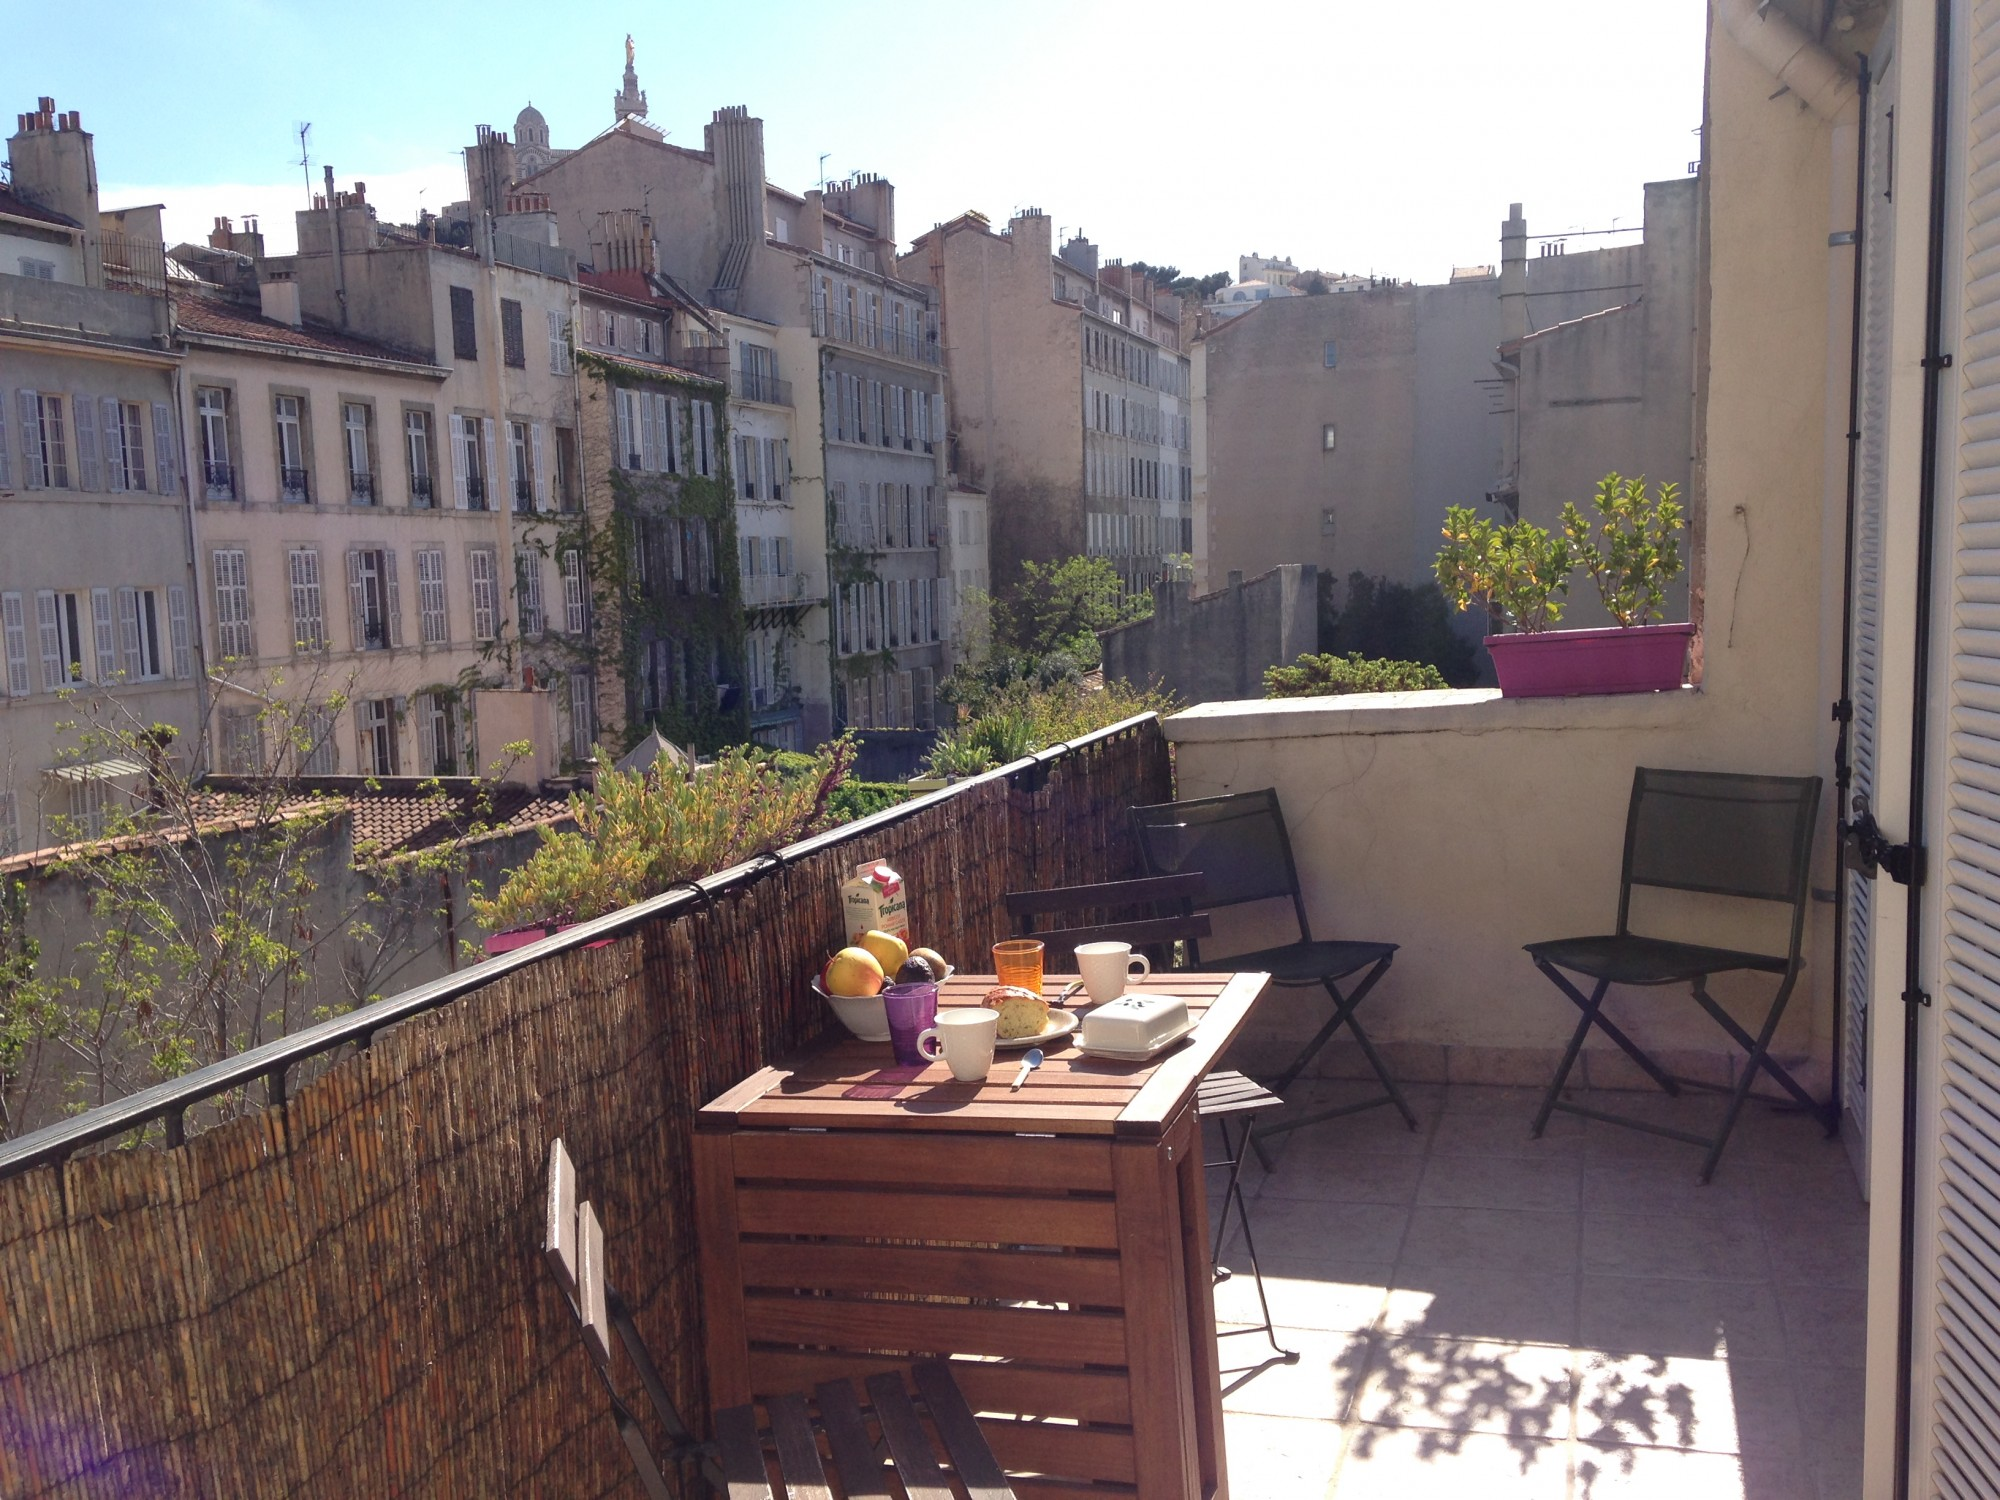 Ventes appartement t2 f2 13006 sylvabelle for Agence immobiliere 13006